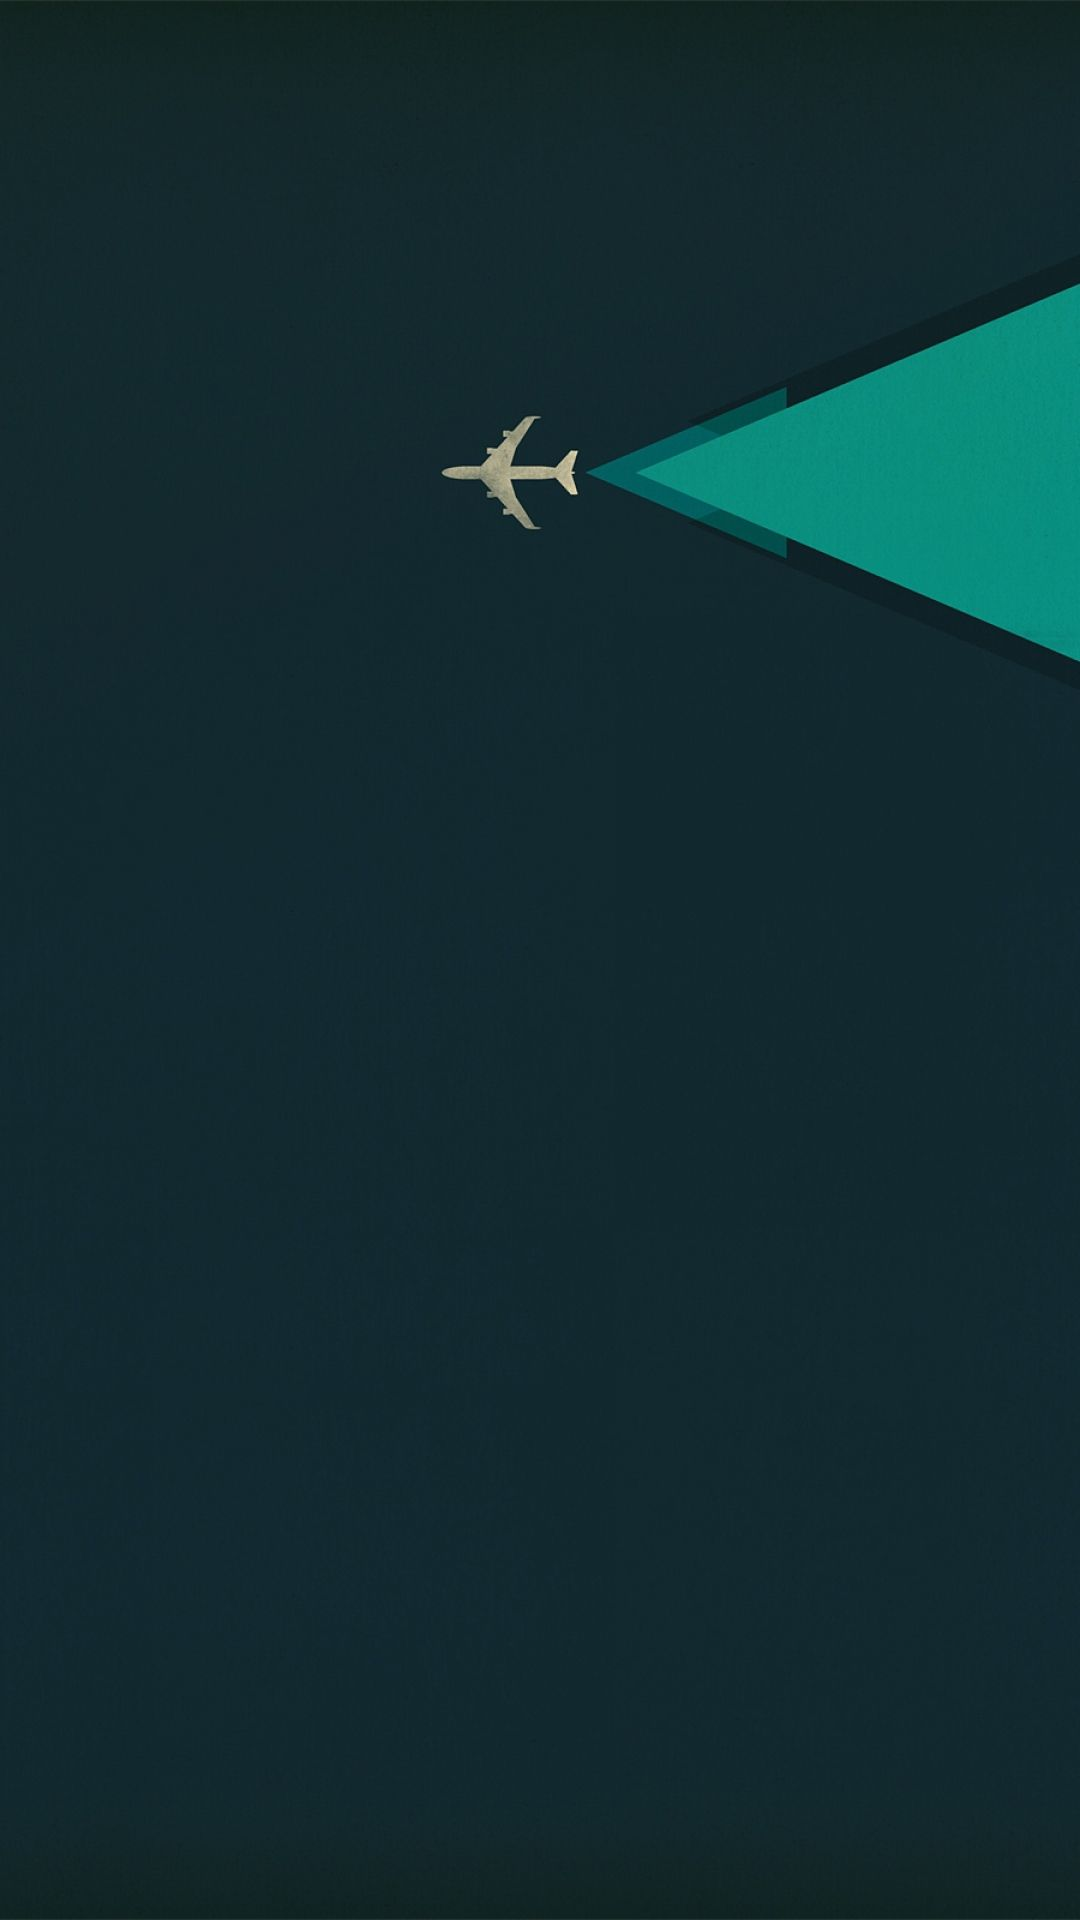 Plane. Tap to see more nice Minimalist iPhone Wallpapers